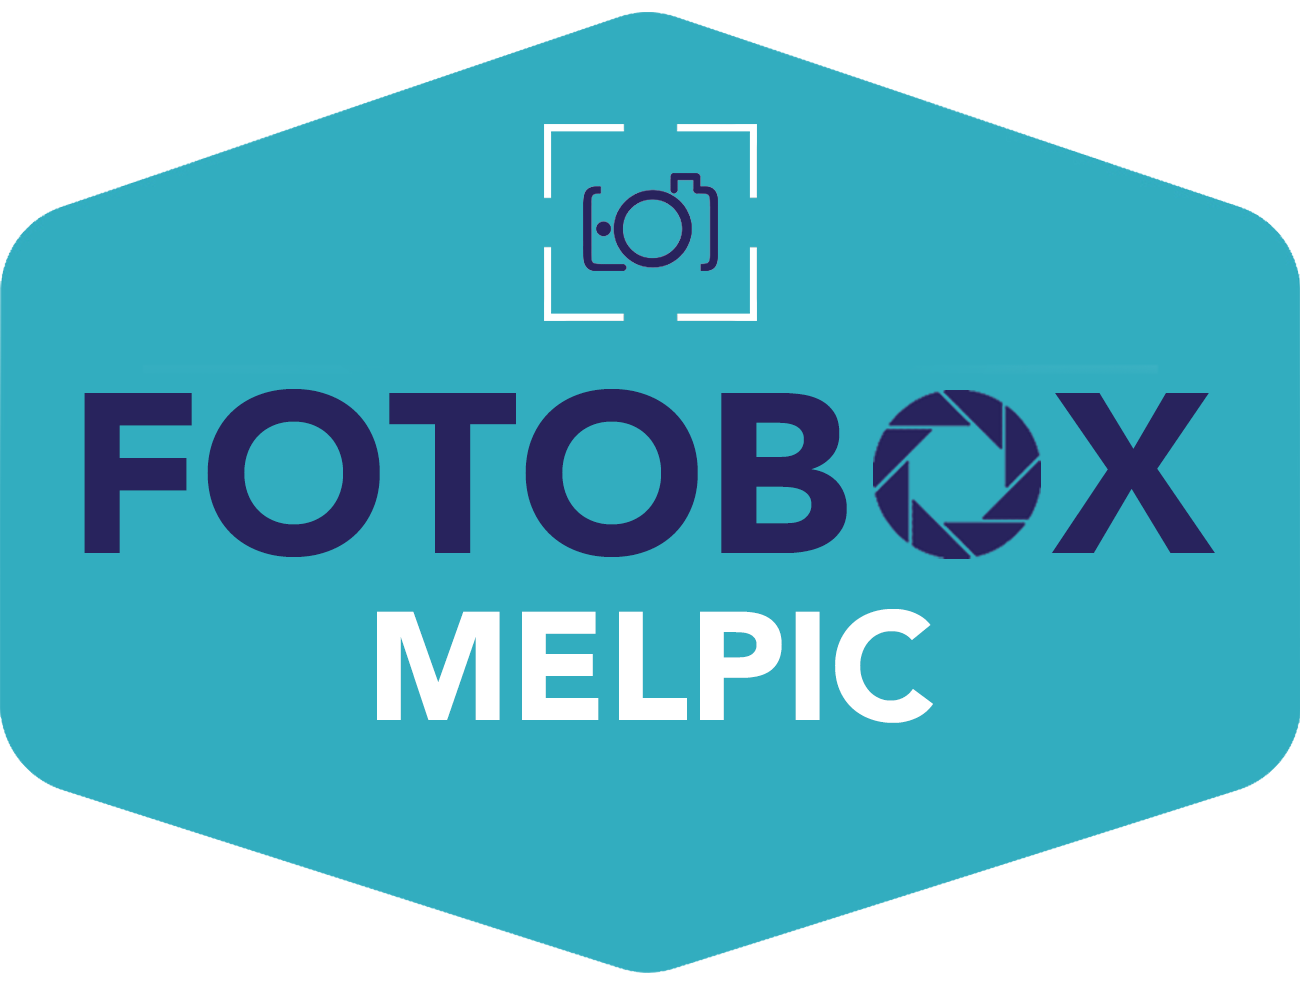 Fotobox Melpic